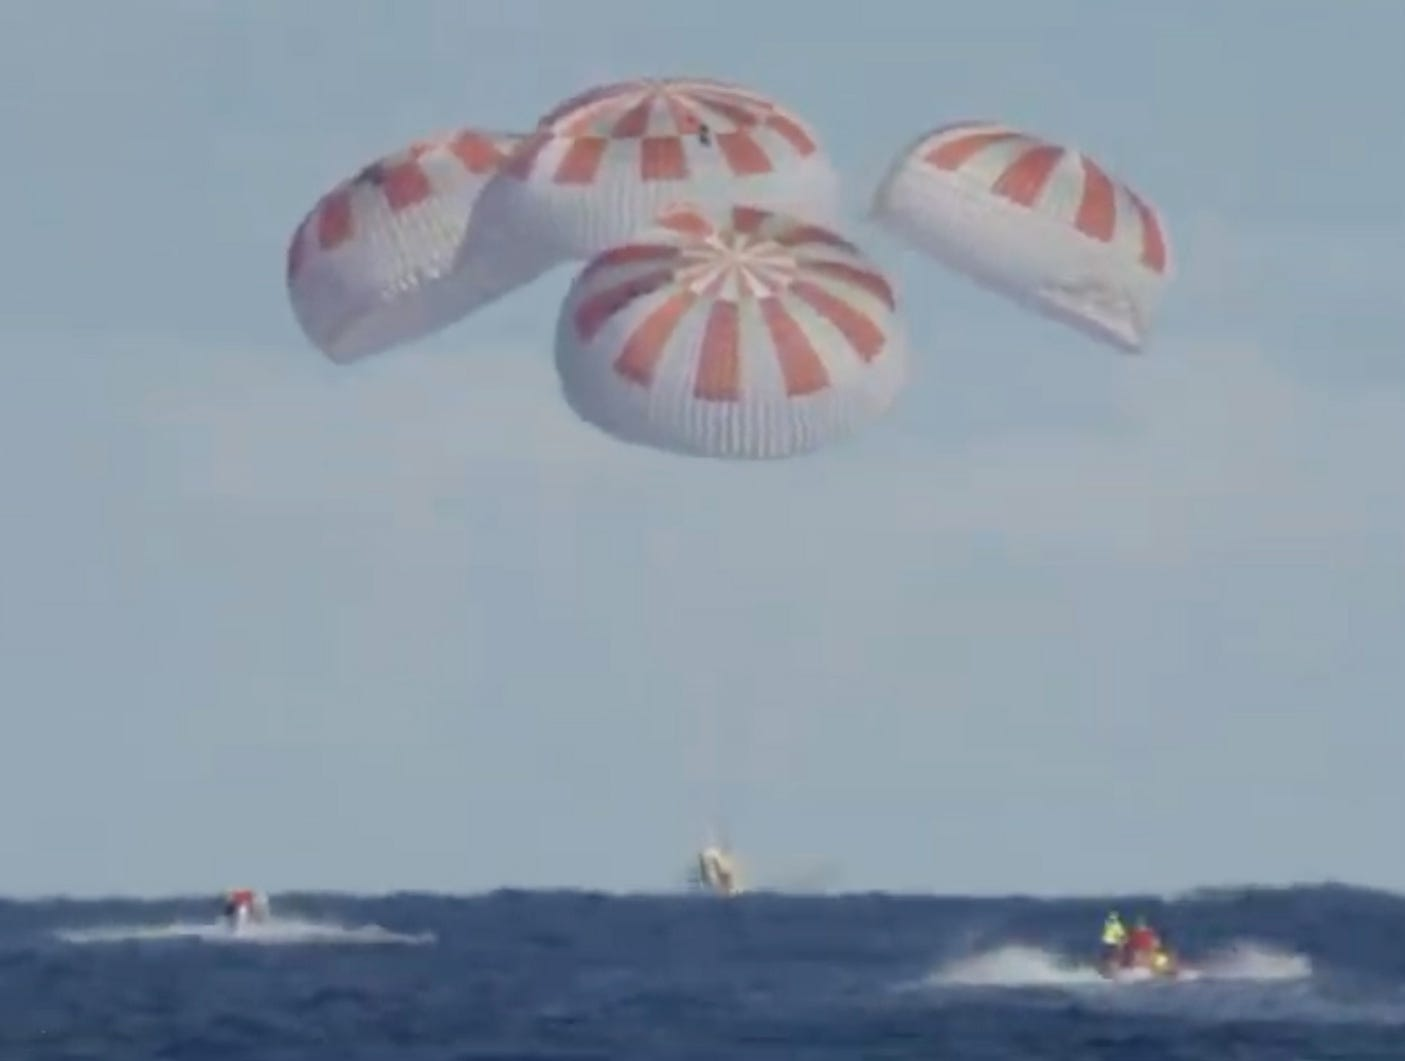 A grab taken from a NASA TV live feed shows SpaceX's Dragon capsule splash down in the Atlantic Ocean, from the International Space Station March 8,  2019. The Crew Dragon docked autonomously to the orbiting laboratory, a historic first for a commercially built and operated US crew spacecraft.